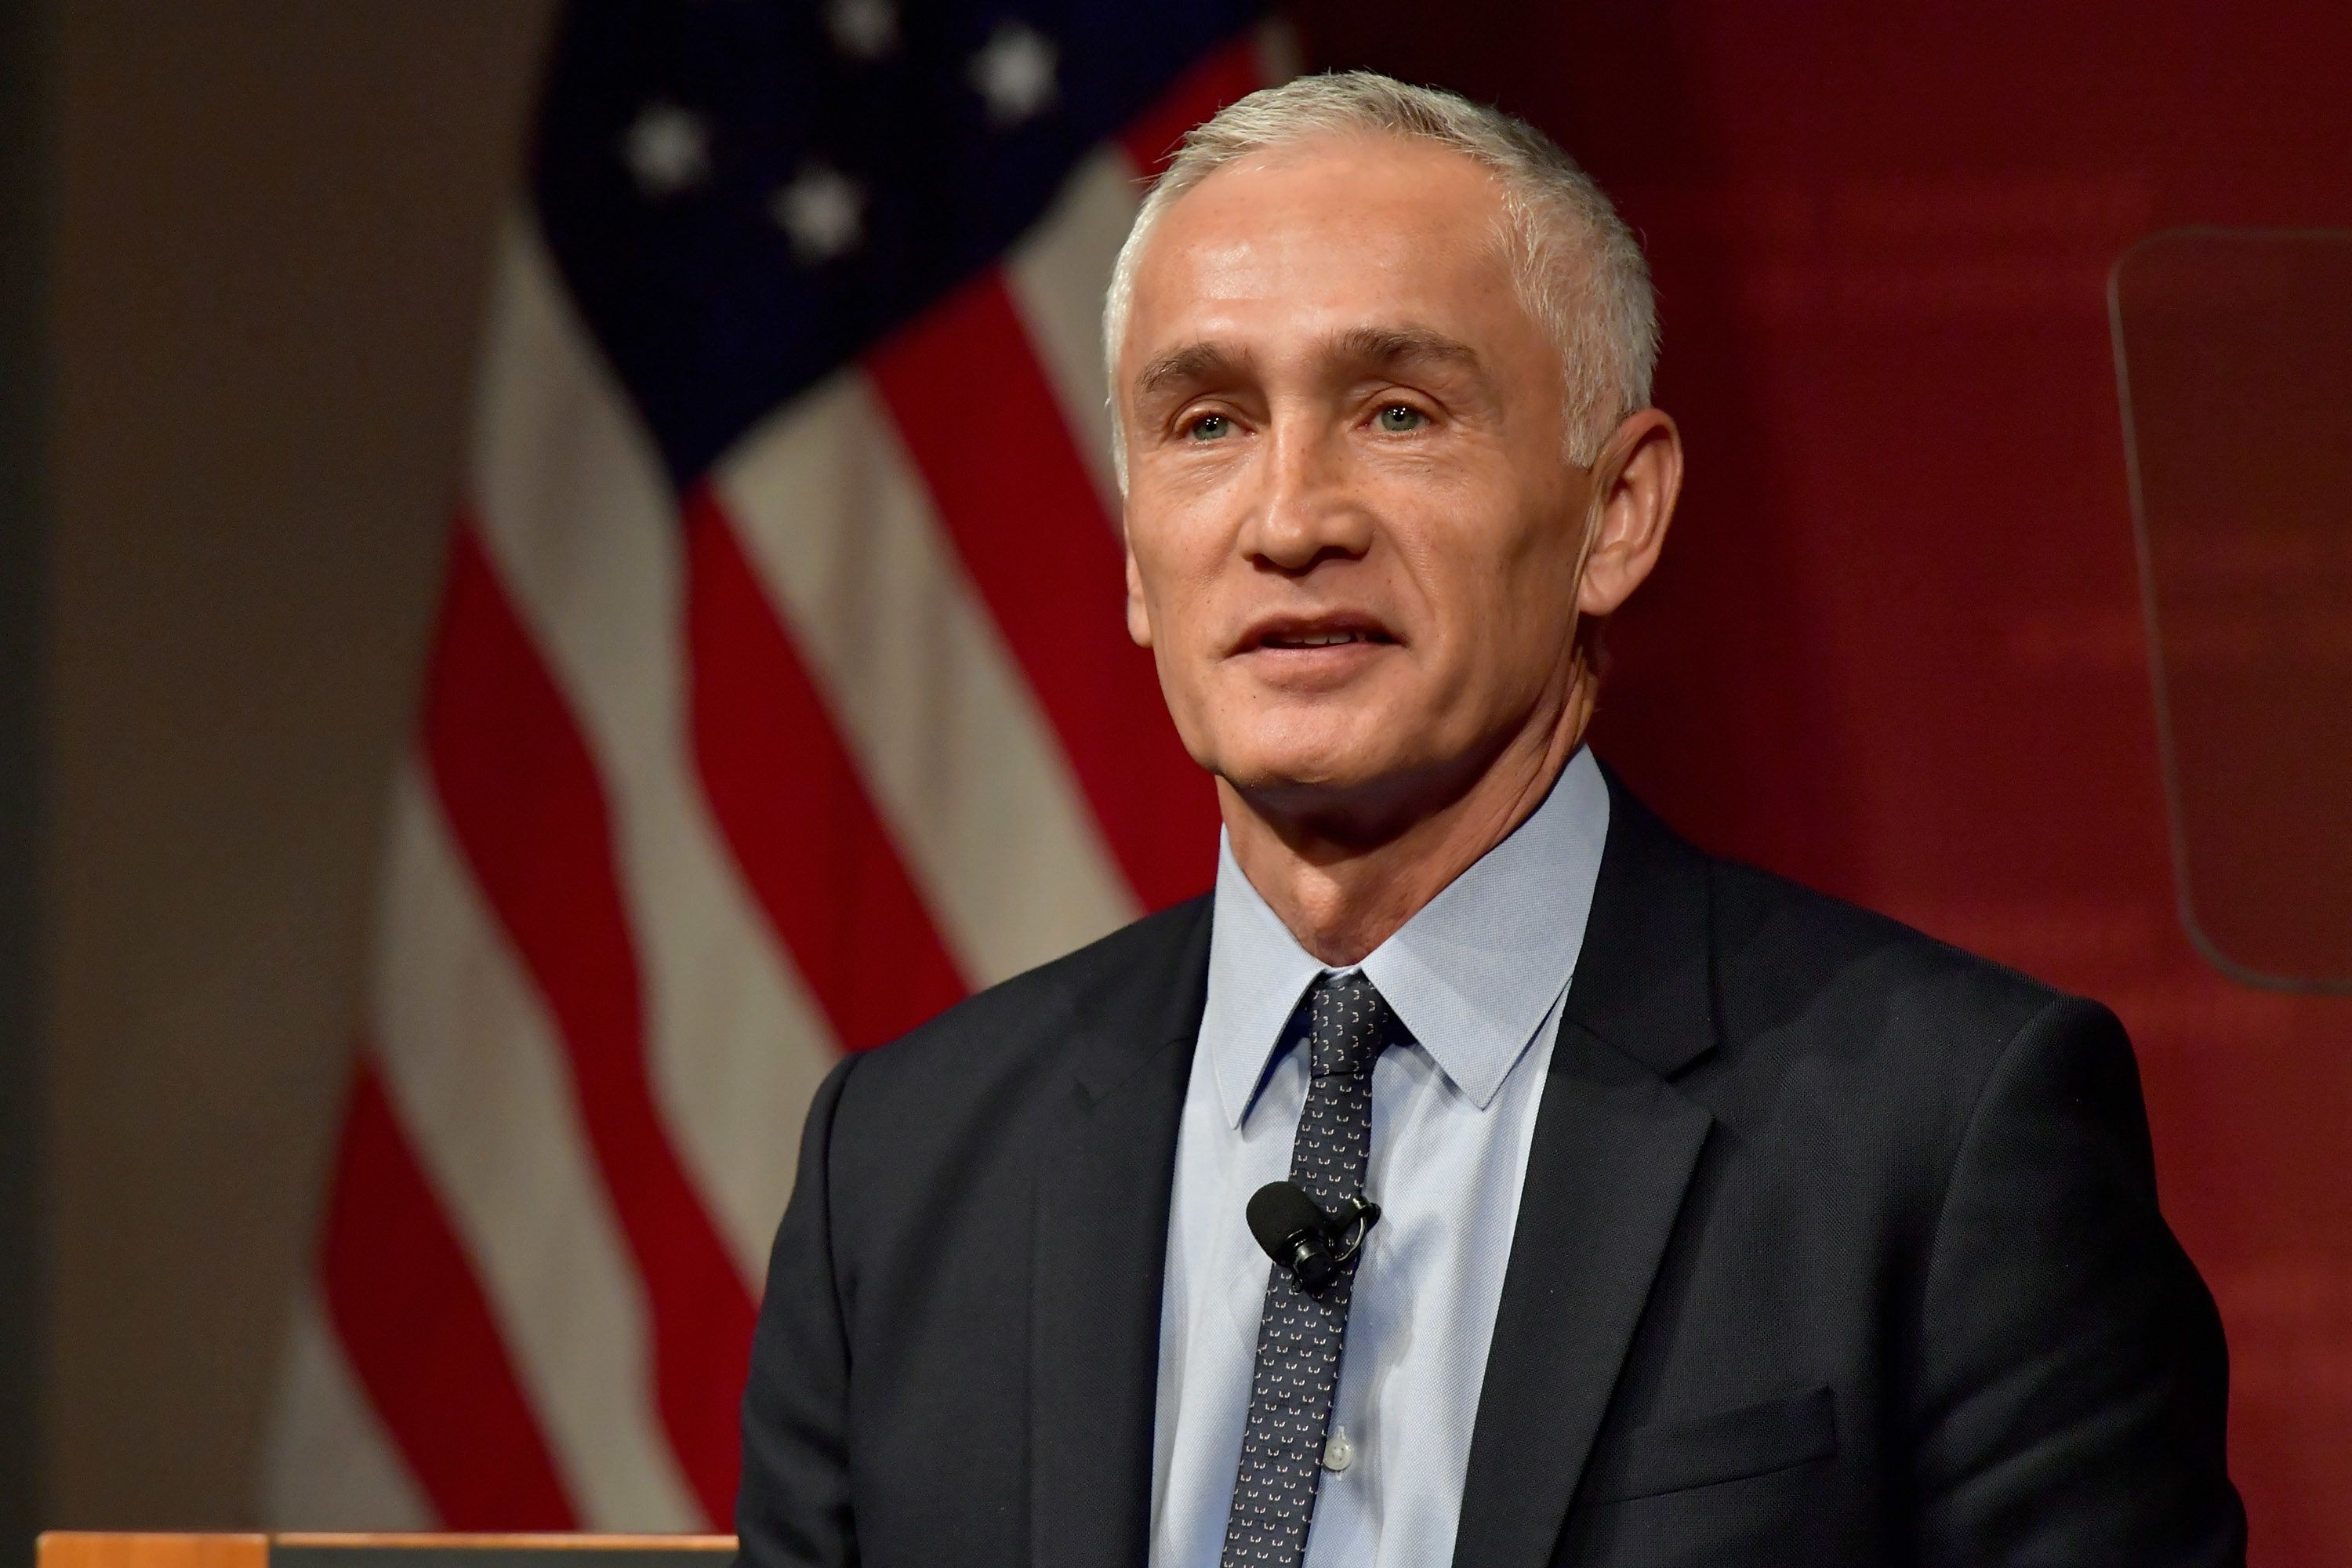 CAMBRIDGE, MA - MARCH 02:  Noticiero Univision Anchor Jorge Ramos receives the Goldsmith Career Award for Excellence in Journalism from the Harvard University Shorenstein Center on March 2, 2017 in Cambridge, Massachusetts.  (Photo by Paul Marotta/Getty Images)